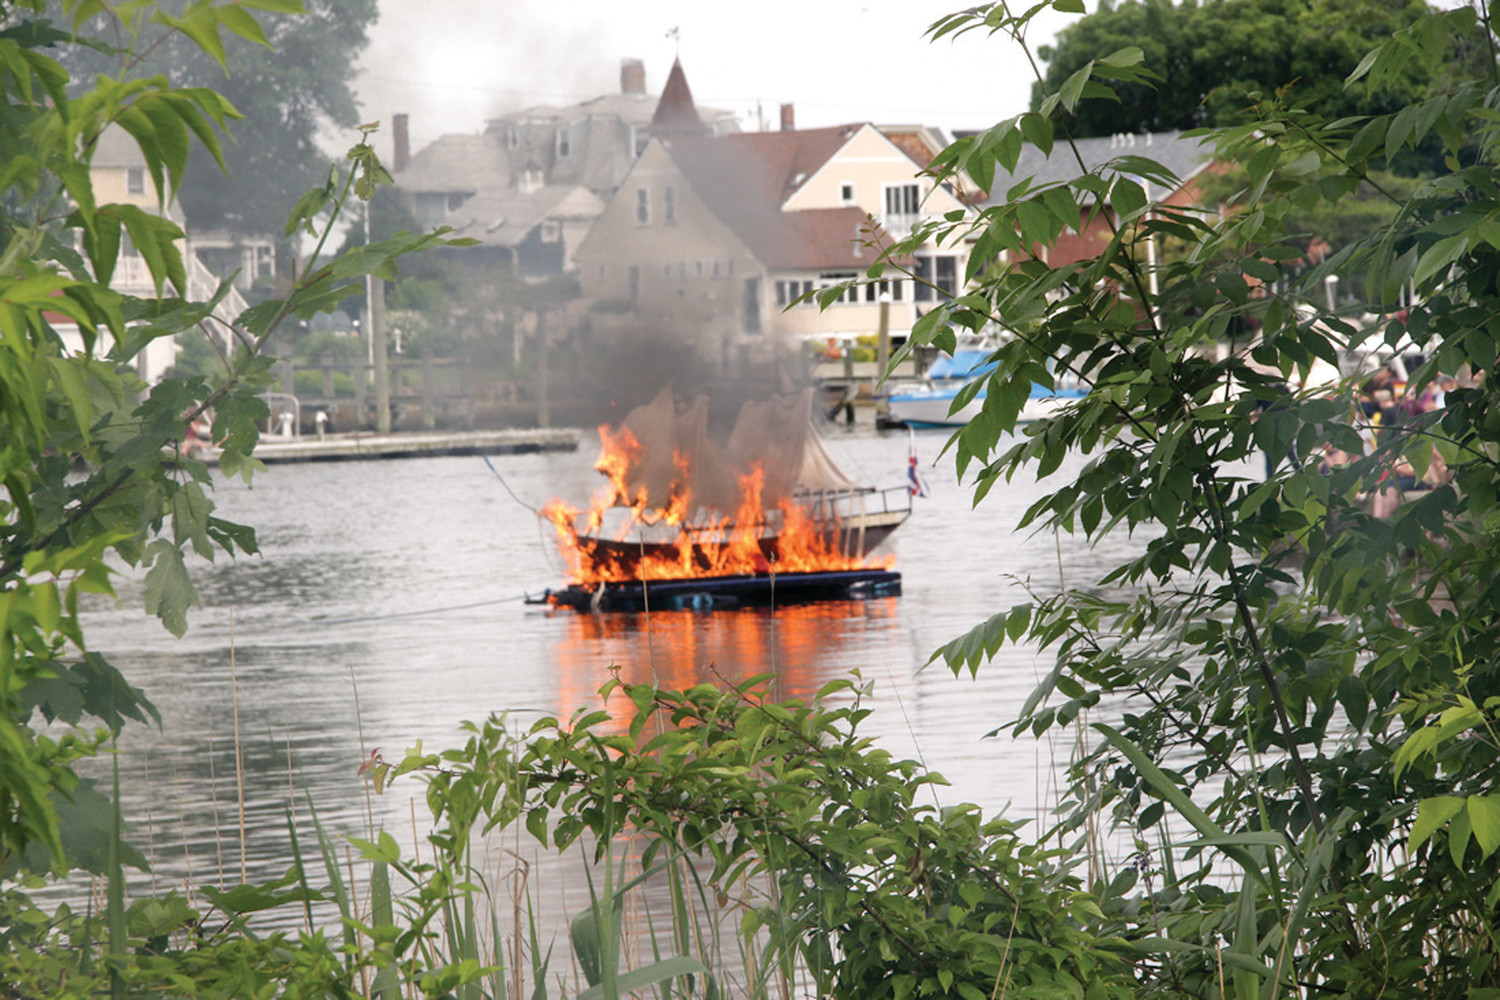 ABLAZE: To the delight of spectators, the Gaspee burns in Pawtuxet Cove.